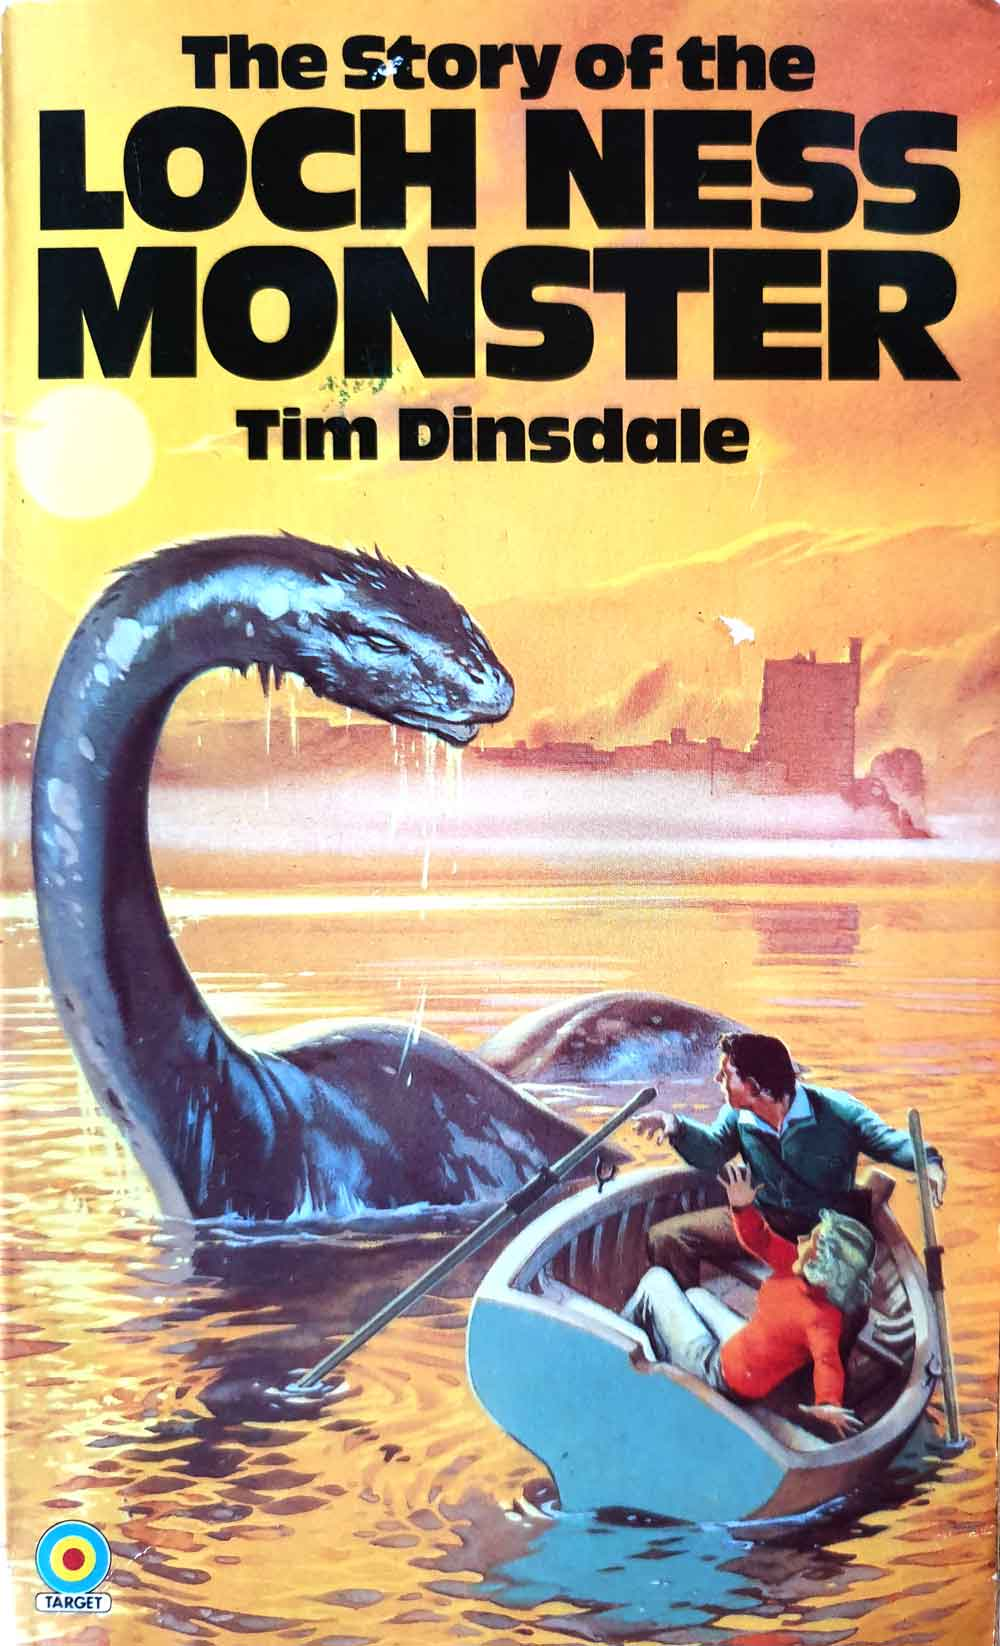 Scientific interest in Nessie might have waned during the 1980s, but this was the decade that gave us this fantastic book cover. You might doubt that encounters as close and thrilling as this ever occurred. It belongs to the sixth edition of this book, published in 1982.